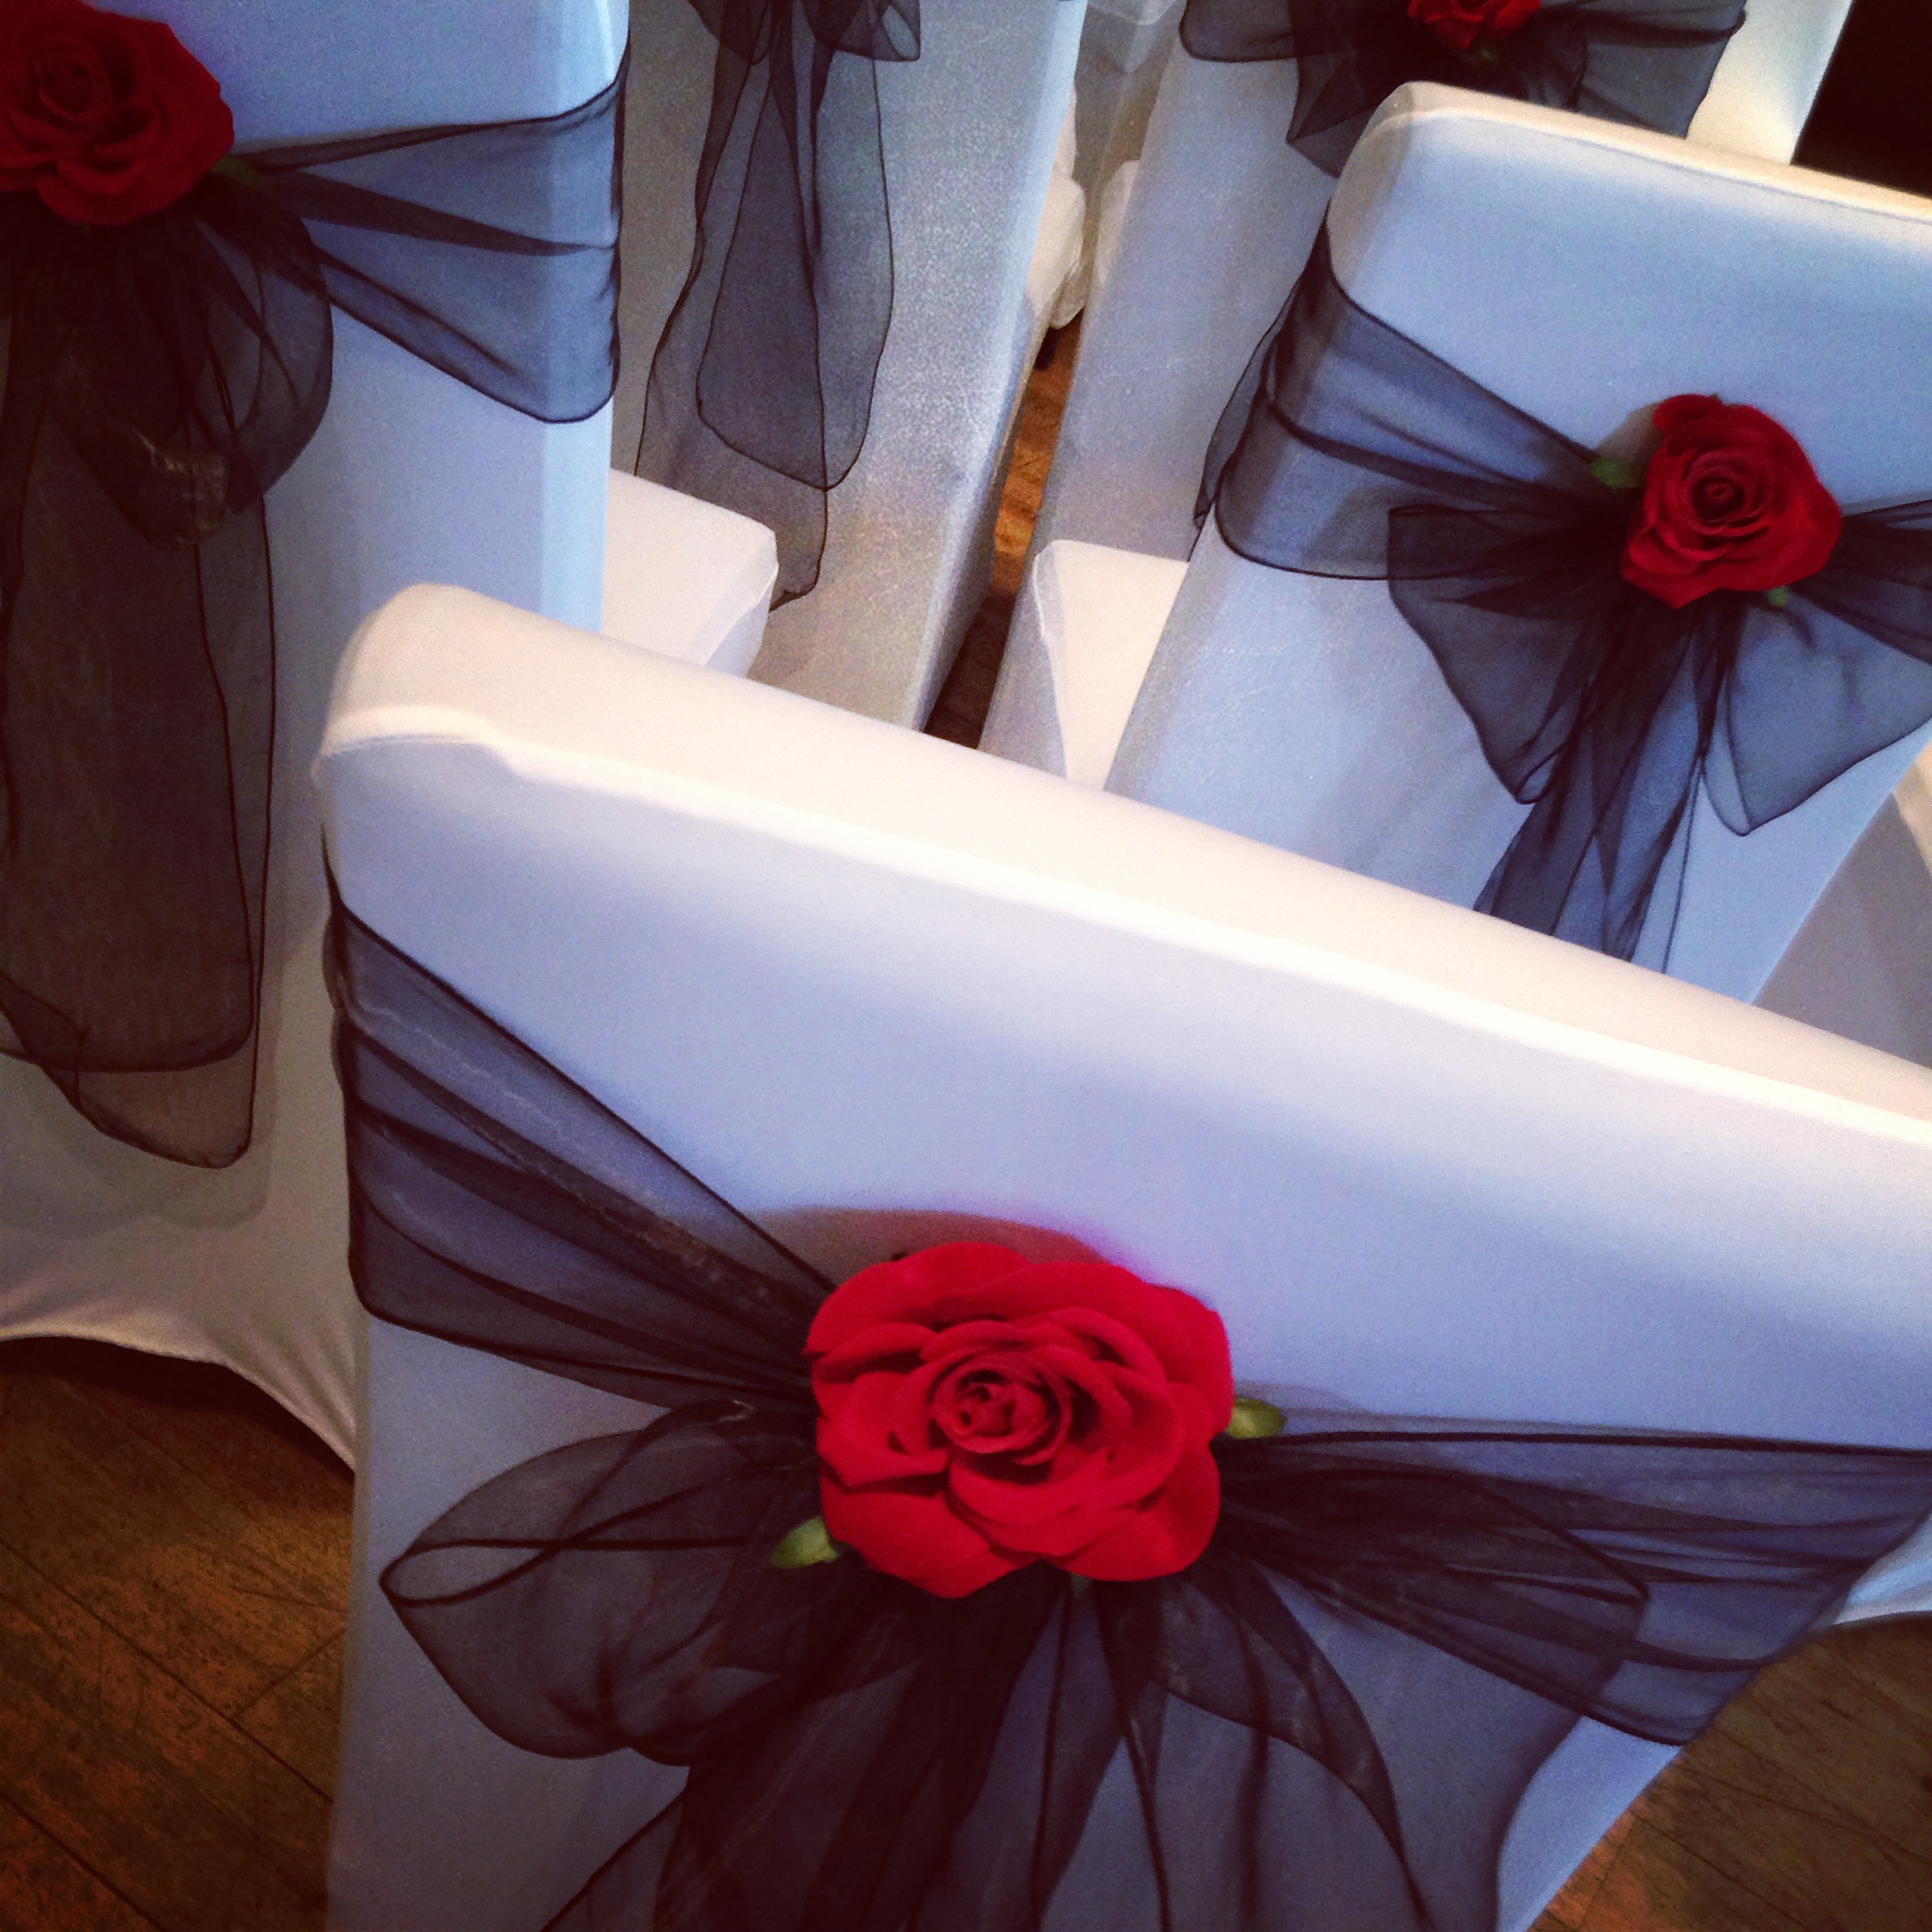 Black chair bow with red rose chair cover hire wedding decor and black chair bow with red rose chair cover hire wedding decor and centrepieces from lily special events glasgow and scotland wedding hire junglespirit Images